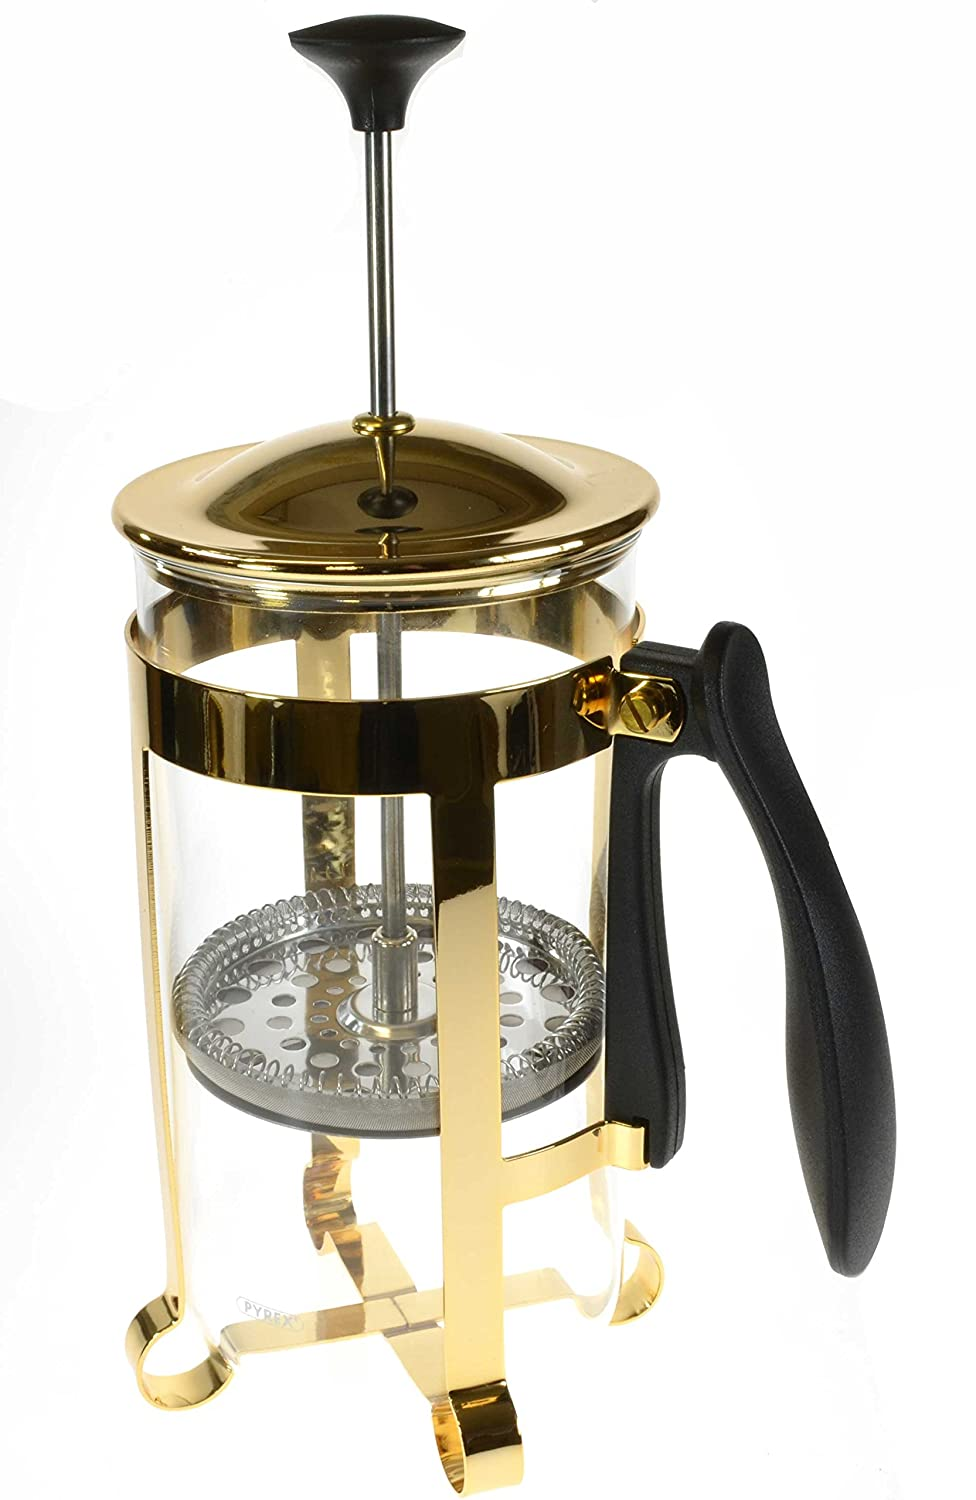 Bravilor Pyrex Cafetiere Coffee Press 8 Cup Gold Finish 1.0 Litre for Coffee or Tea